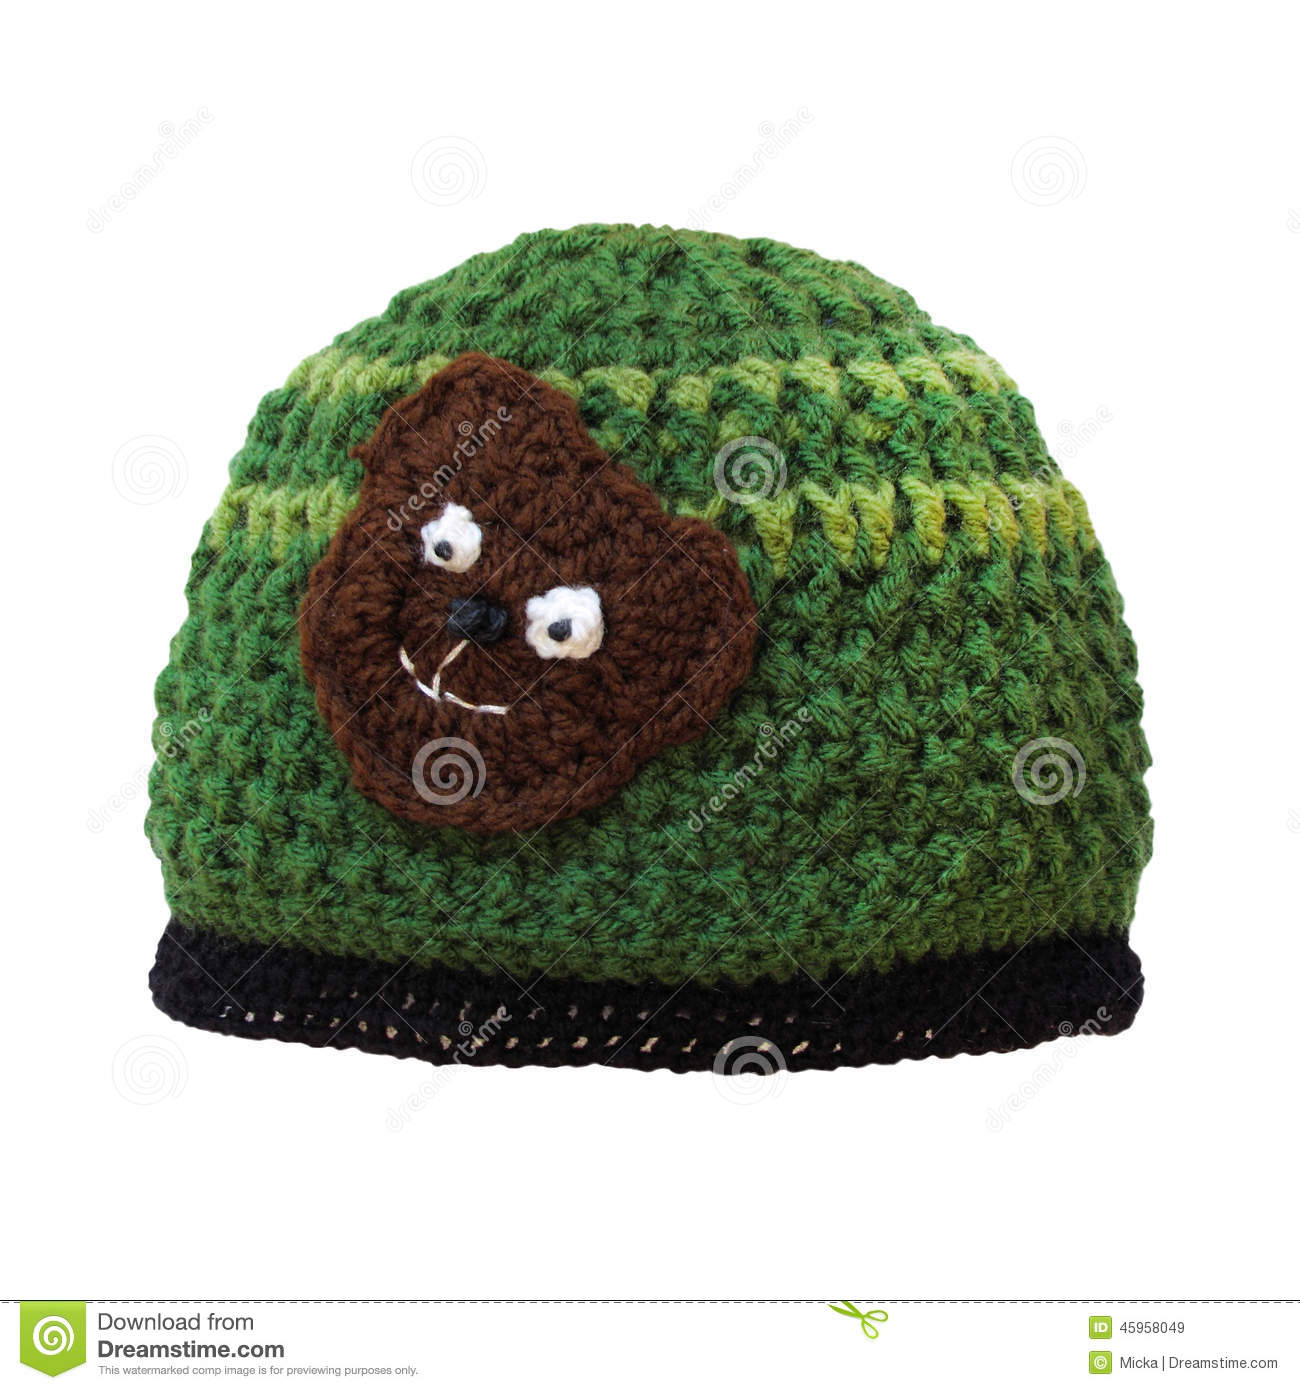 22c8691373a Woolen cap with teddy bear for child isolated on white. Crochet handmade  cute hat.